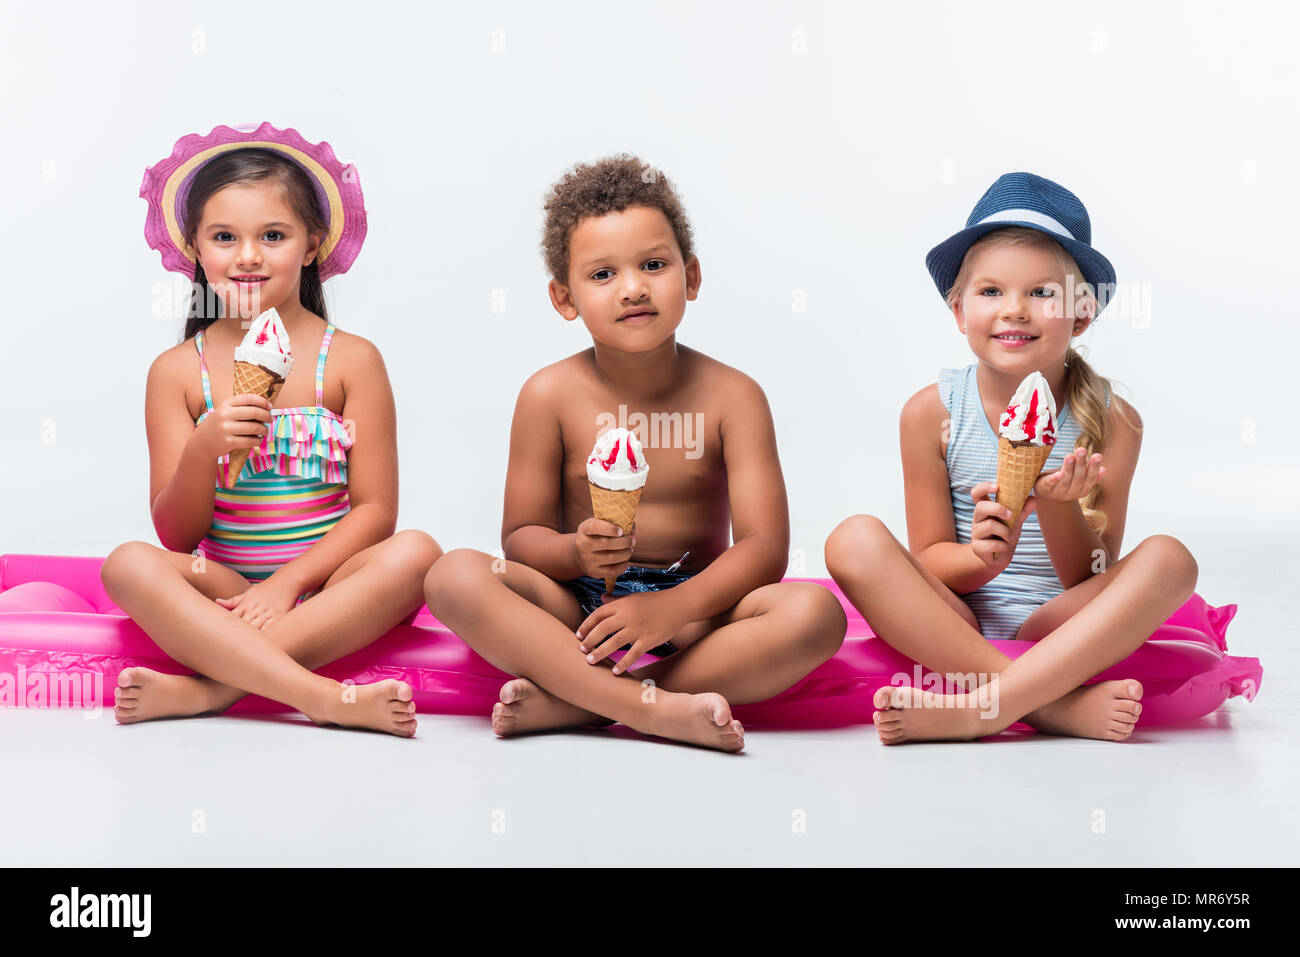 adorable multiethnic kids in swimwear eating ice cream while sitting on swimming mattress - Stock Image